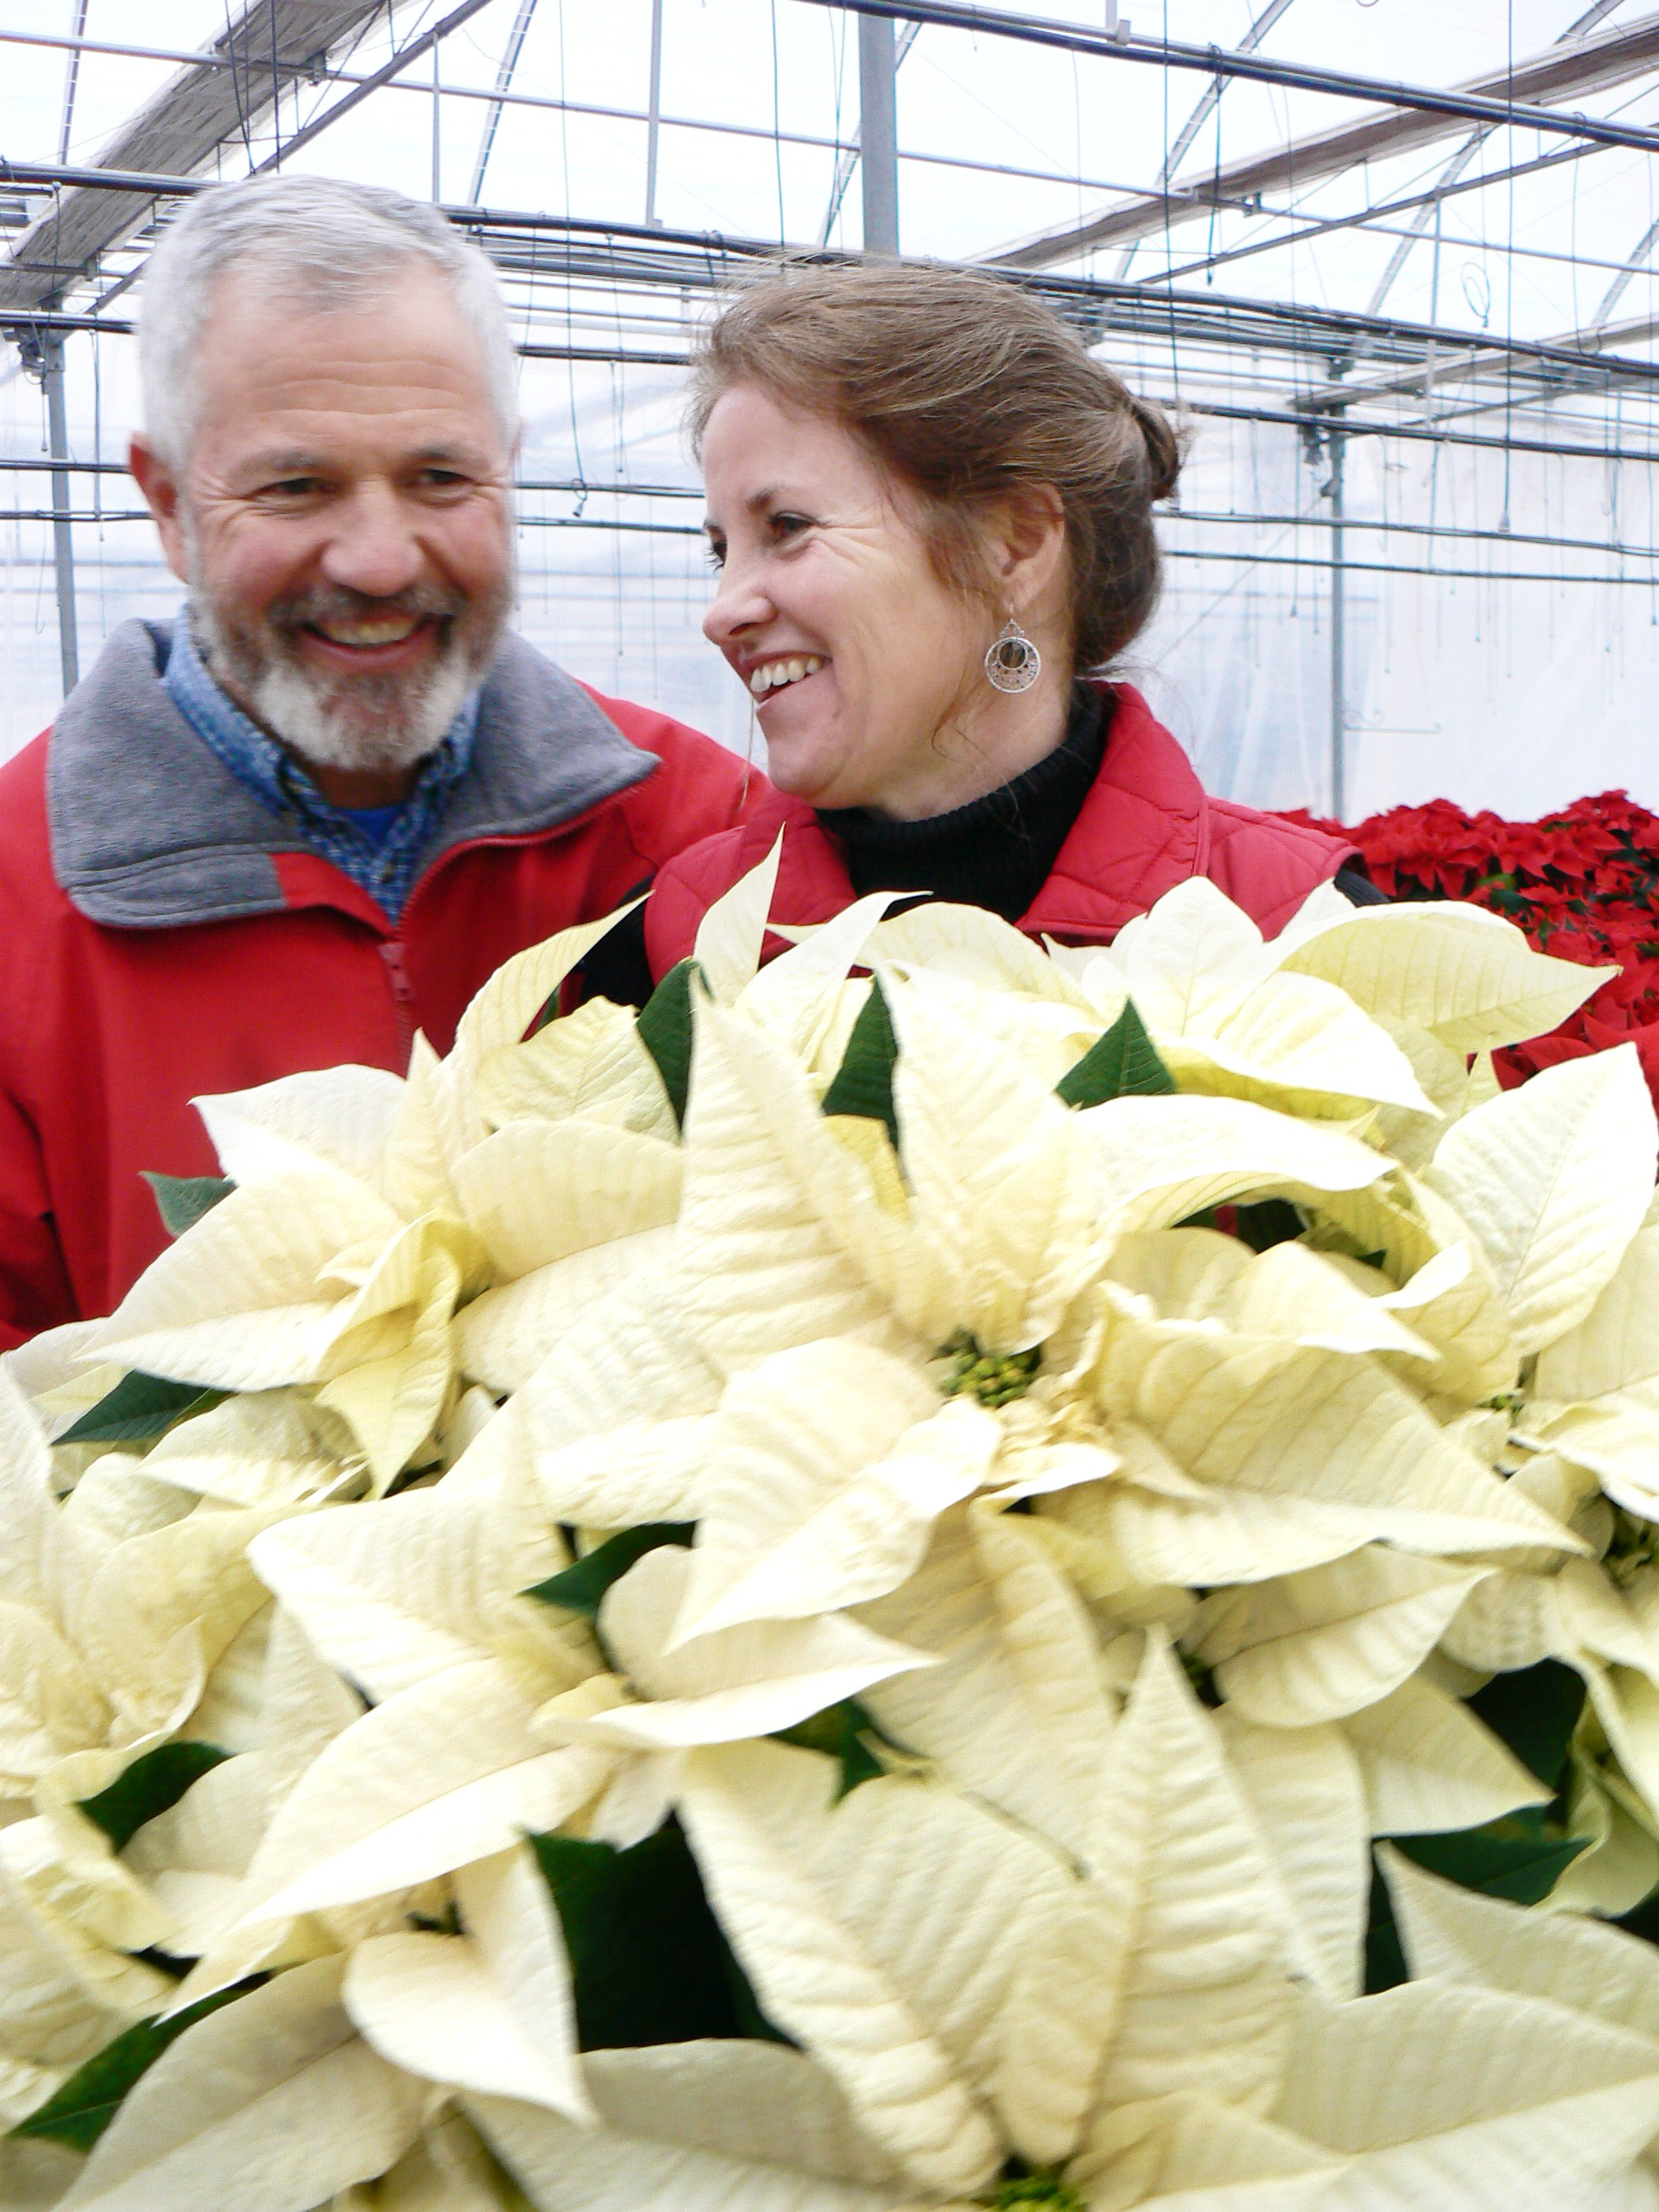 Owners Tim and Linda Kirby spend some time in the greenhouse together.